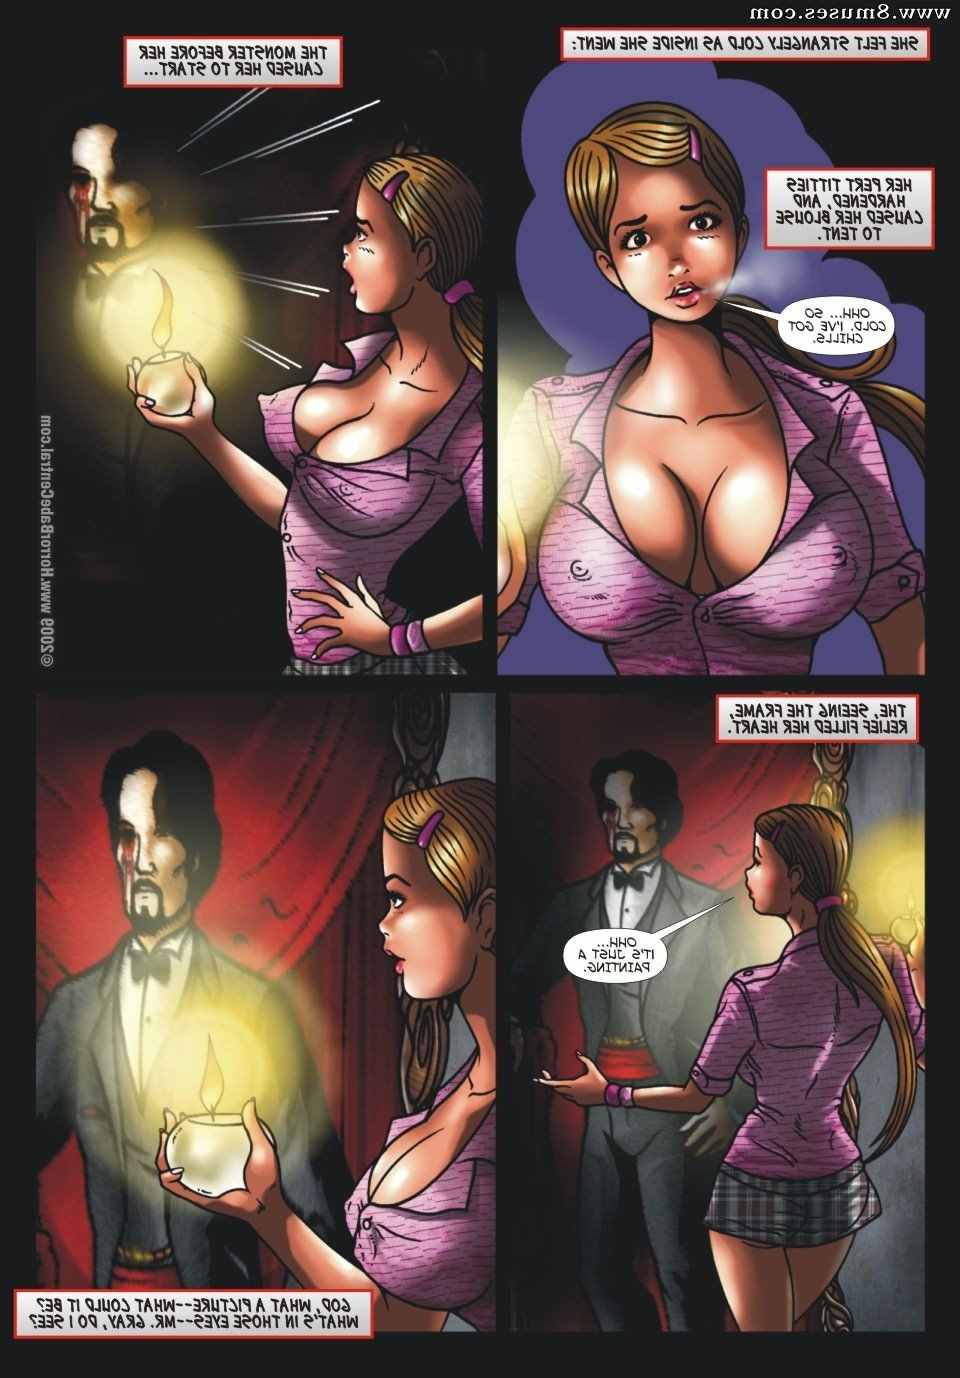 Central-Comics/Horror-Babe-Central/Fable-of-Fright Fable_of_Fright__8muses_-_Sex_and_Porn_Comics_119.jpg